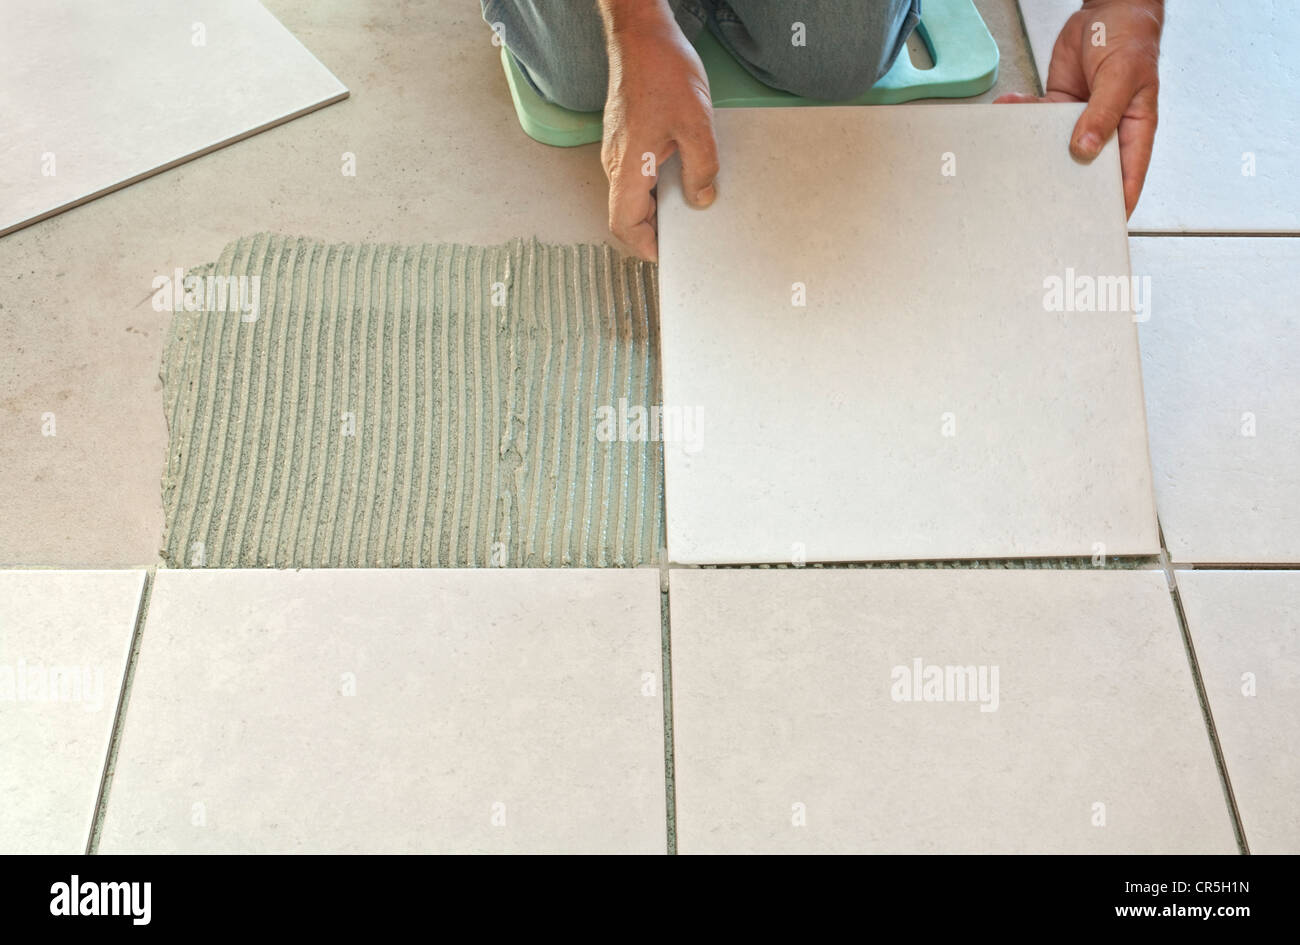 Man placing ceramic floor tile in position over adhesive. - Stock Image